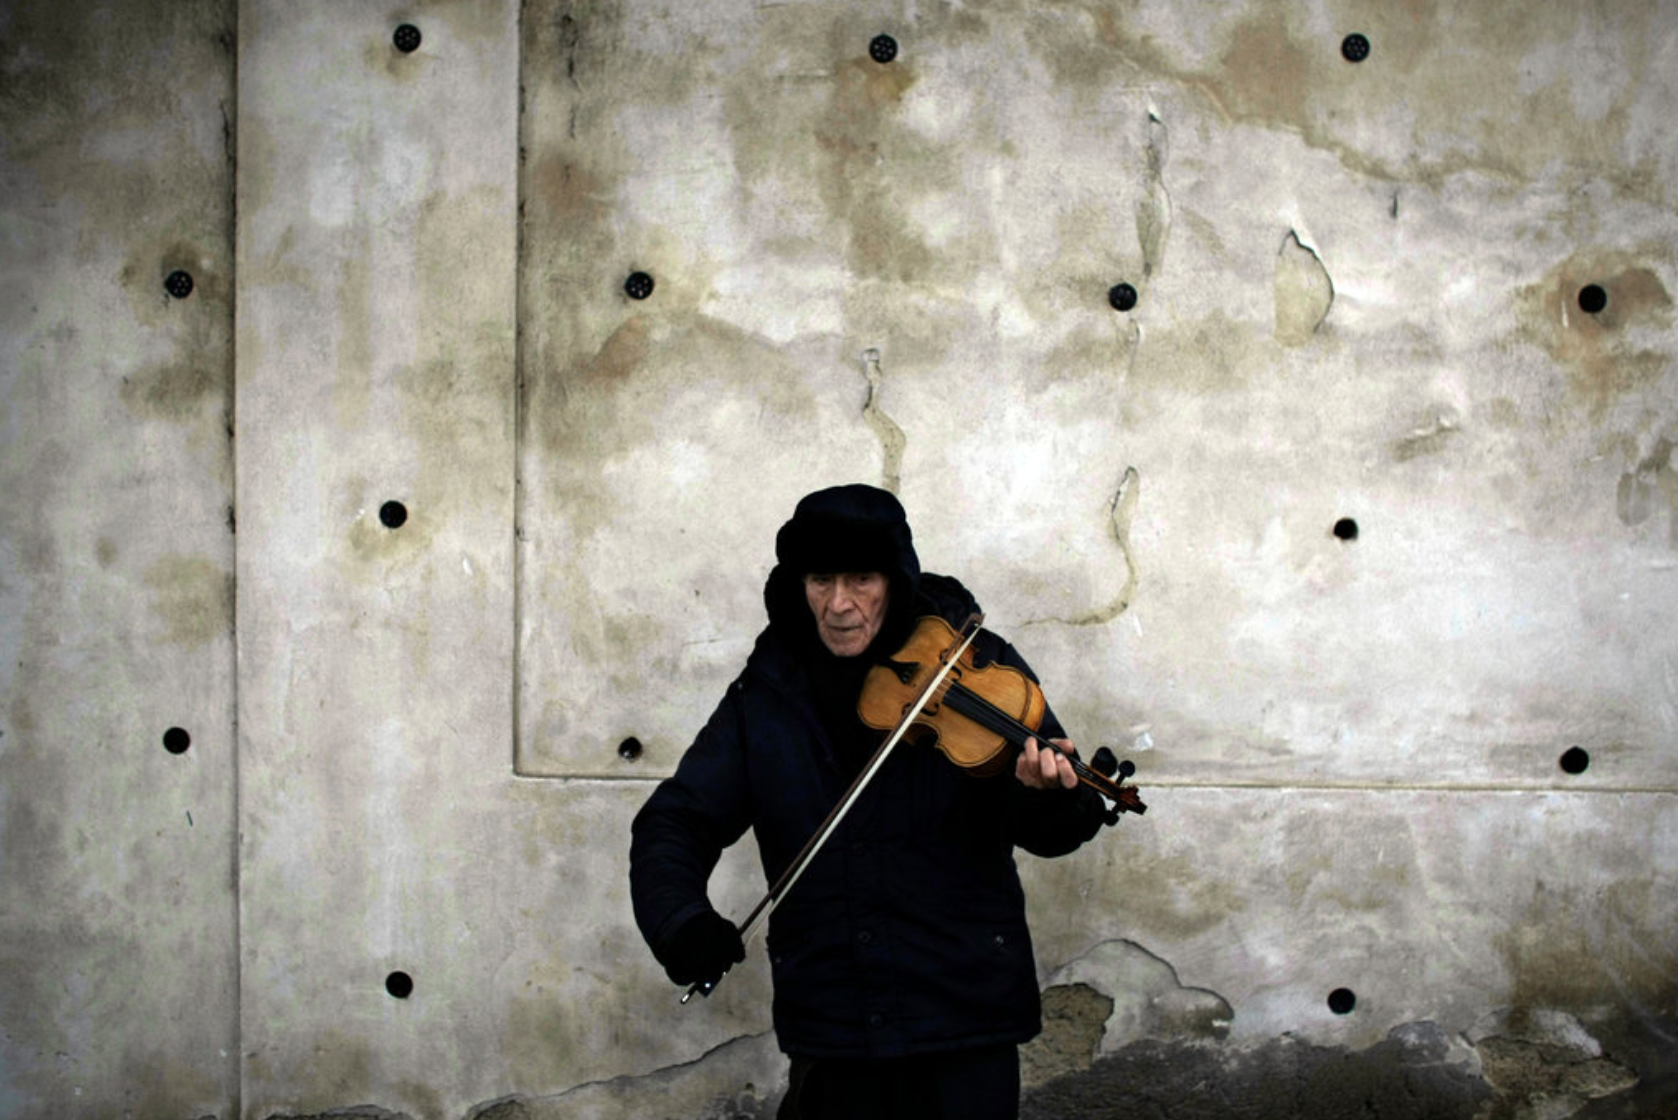 A violinist on a street in Prague, where thousands of Czechs gathered on Friday for the funeral for former President Vaclav Havel. Author: Marko Drobnjakovic/Associated Press